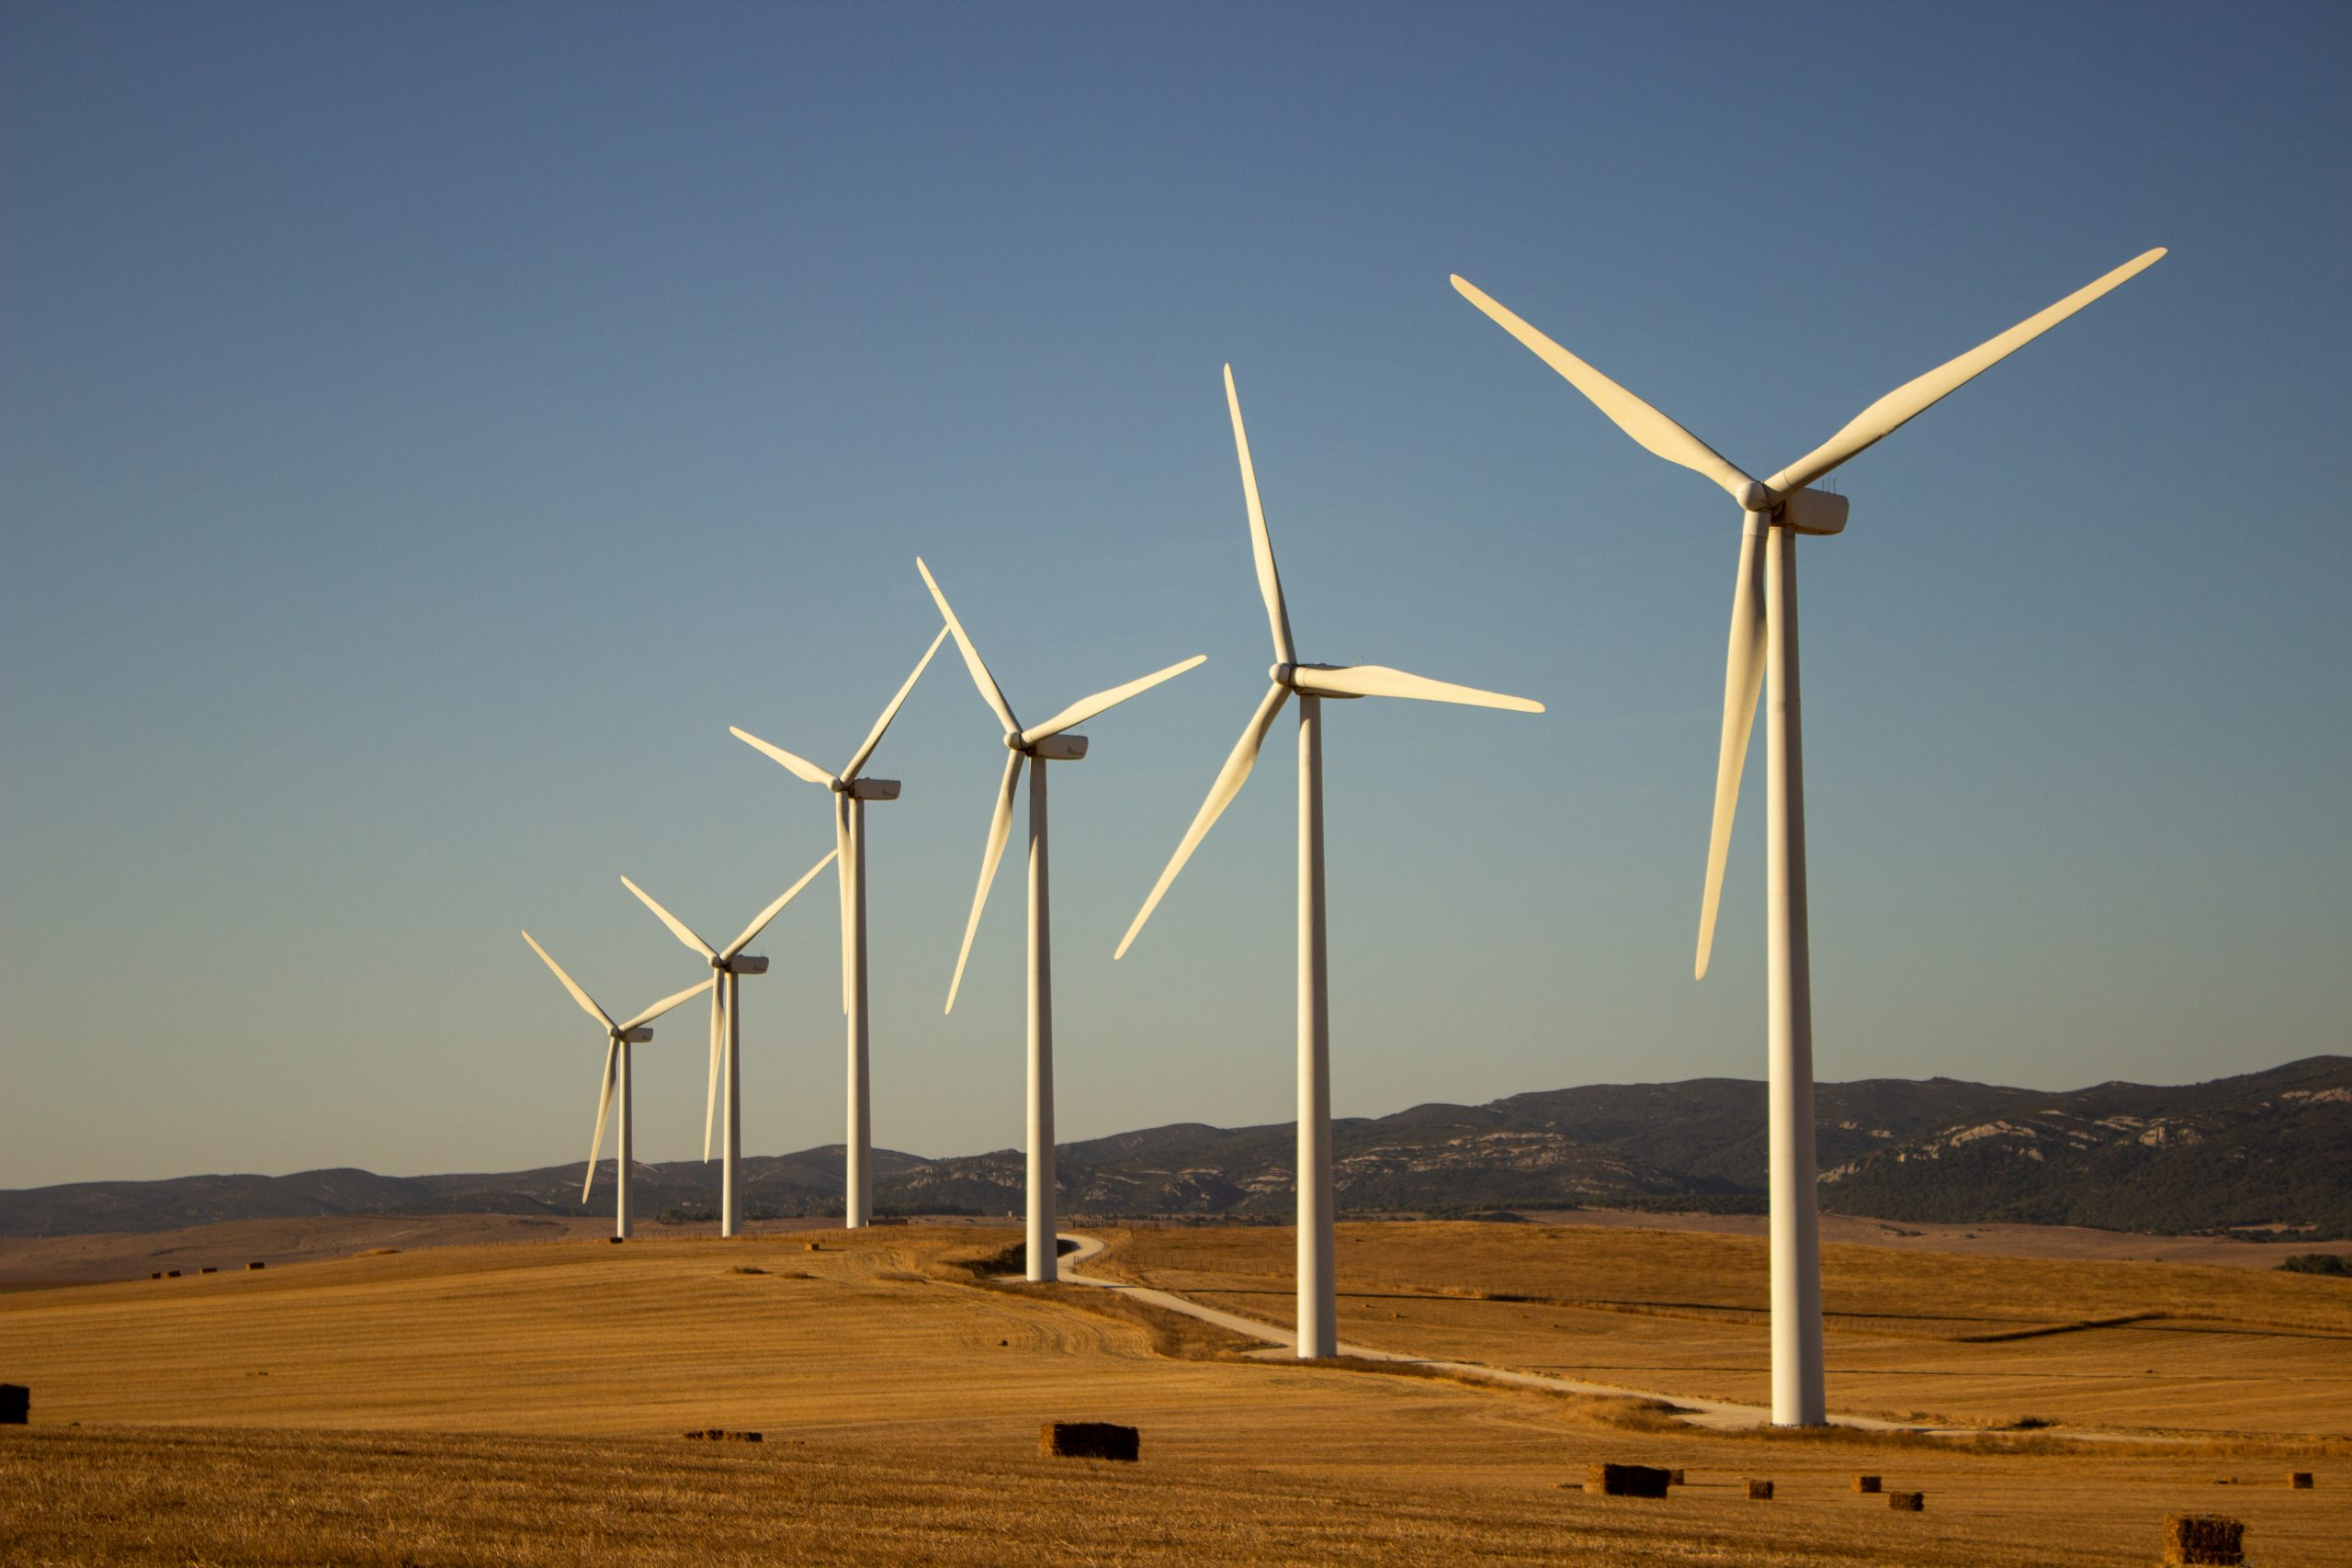 landscape-with-windmills